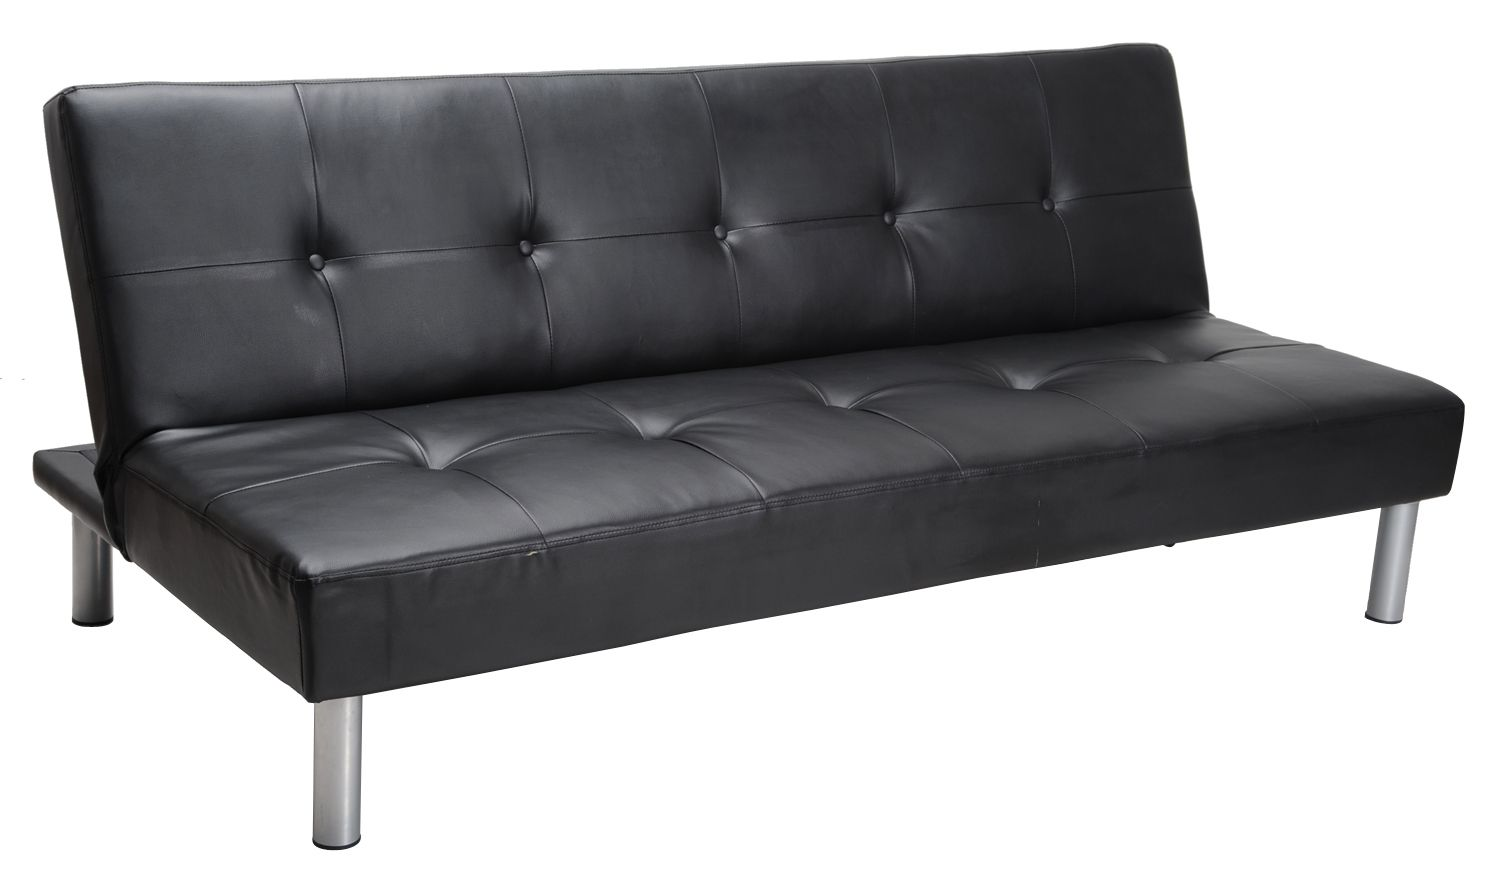 Faux Leather Sofa Bed Black Living Room Furniture